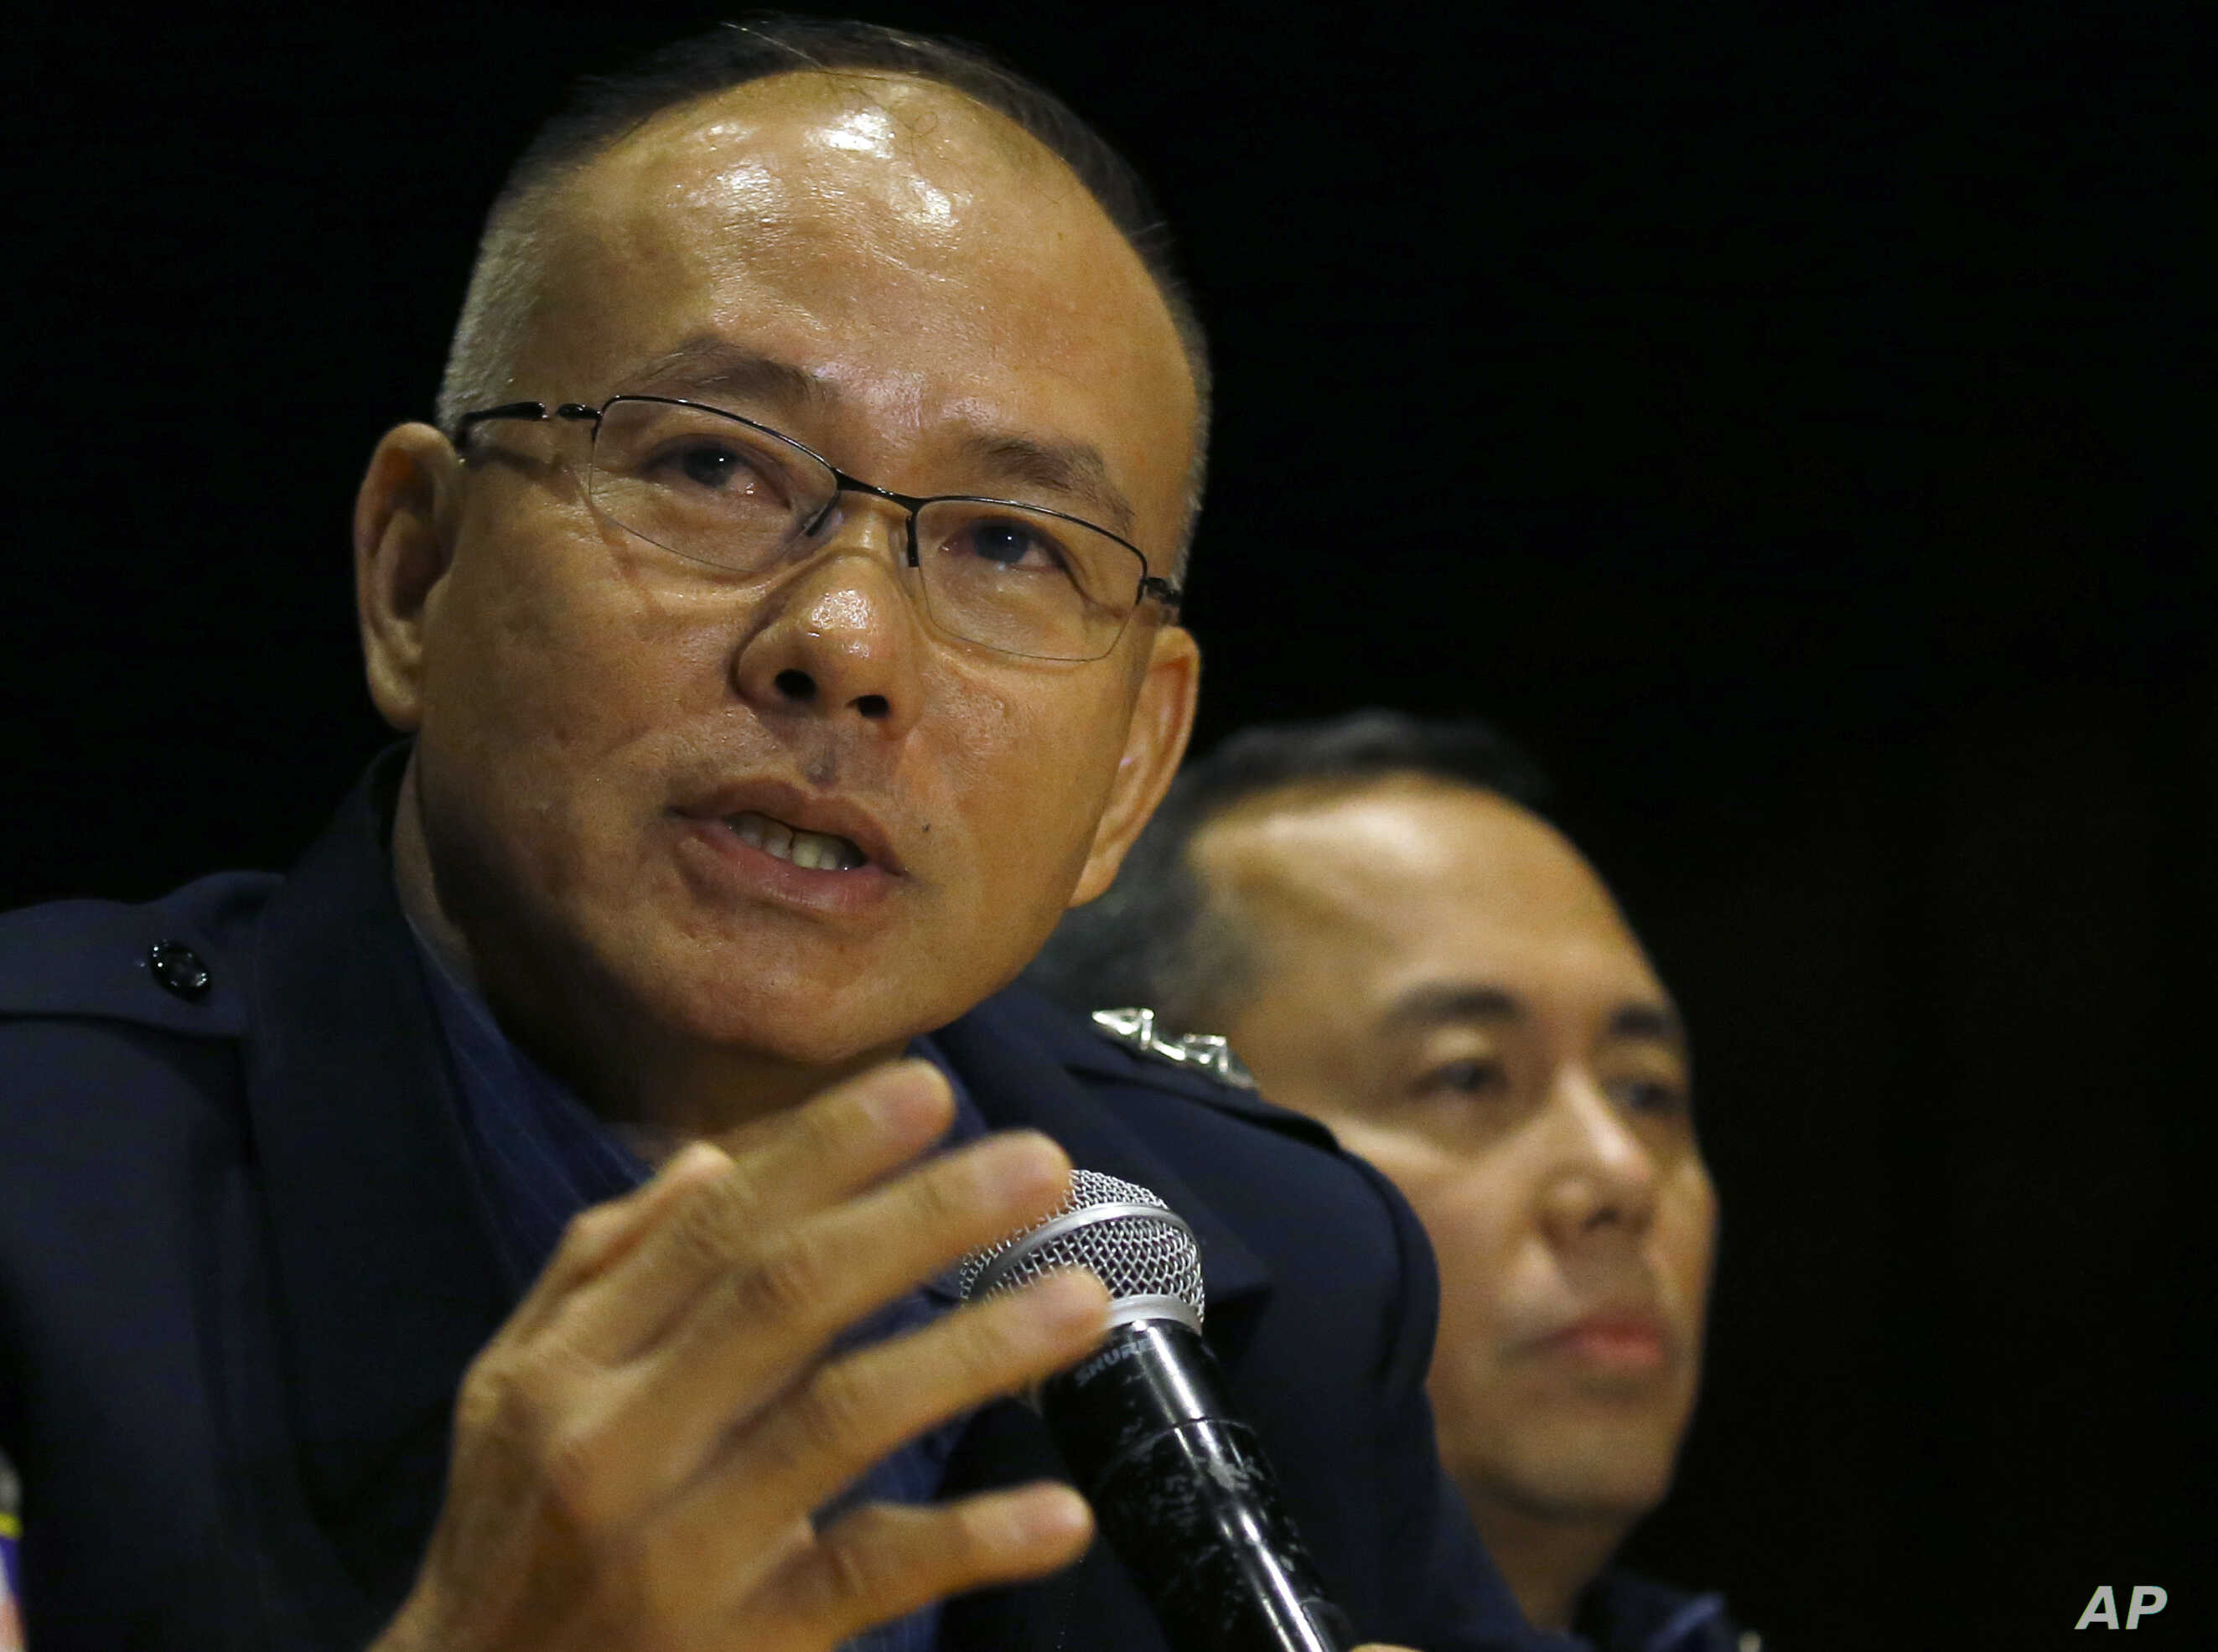 Police Gen. Oscar Albayalde speaks at a news conference on the attack by a gunman at Resorts World Manila complex where a security video of the attack was made public, June 3, 2017.